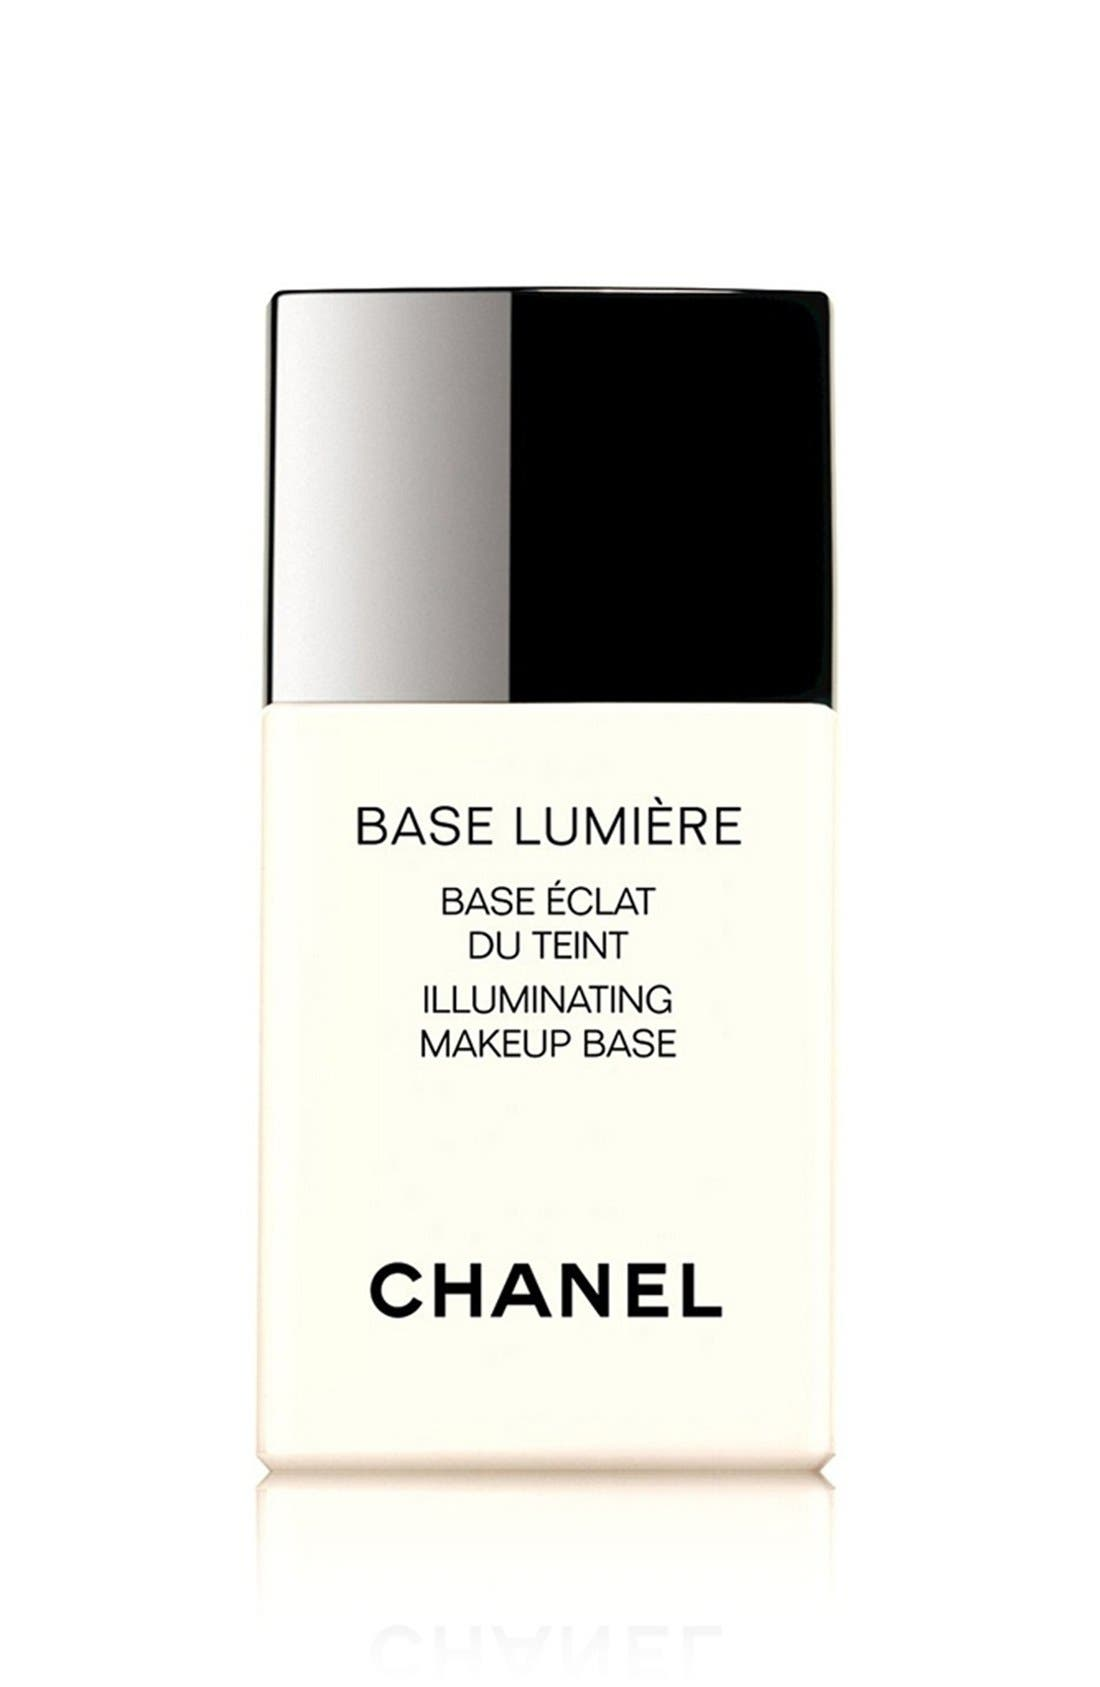 CHANEL BASE LUMIÈRE 